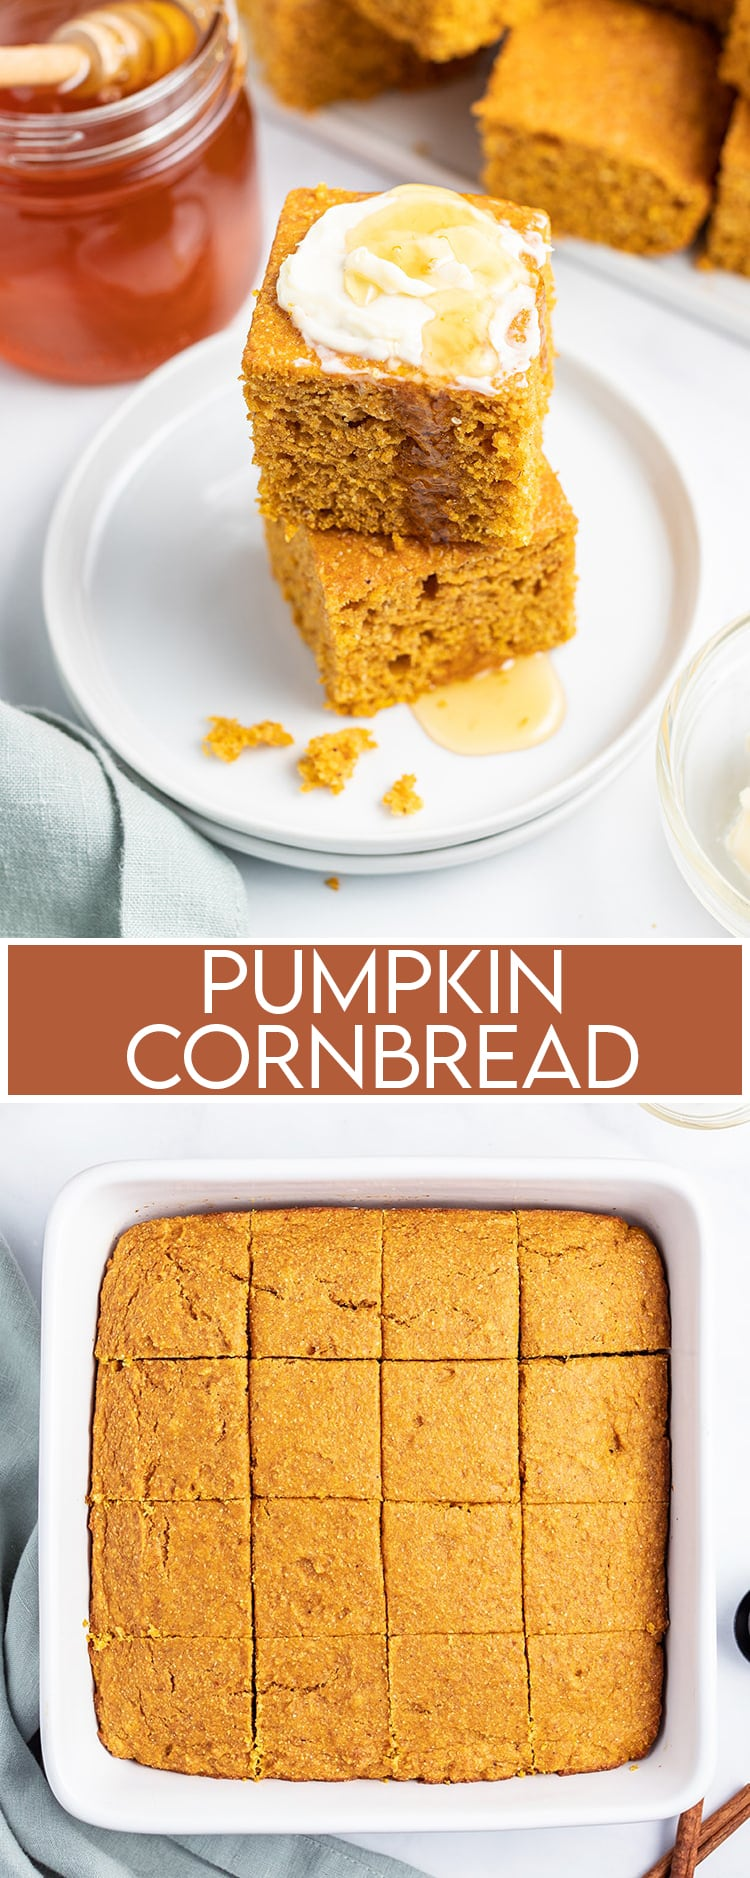 A collage of two photos with text overlay saying Pumpkin Cornbread for Pinterest. The first photo is a stack of pumpkin cornbread with butter and honey on top. The second photo is pumpkin cornbread in a pan.